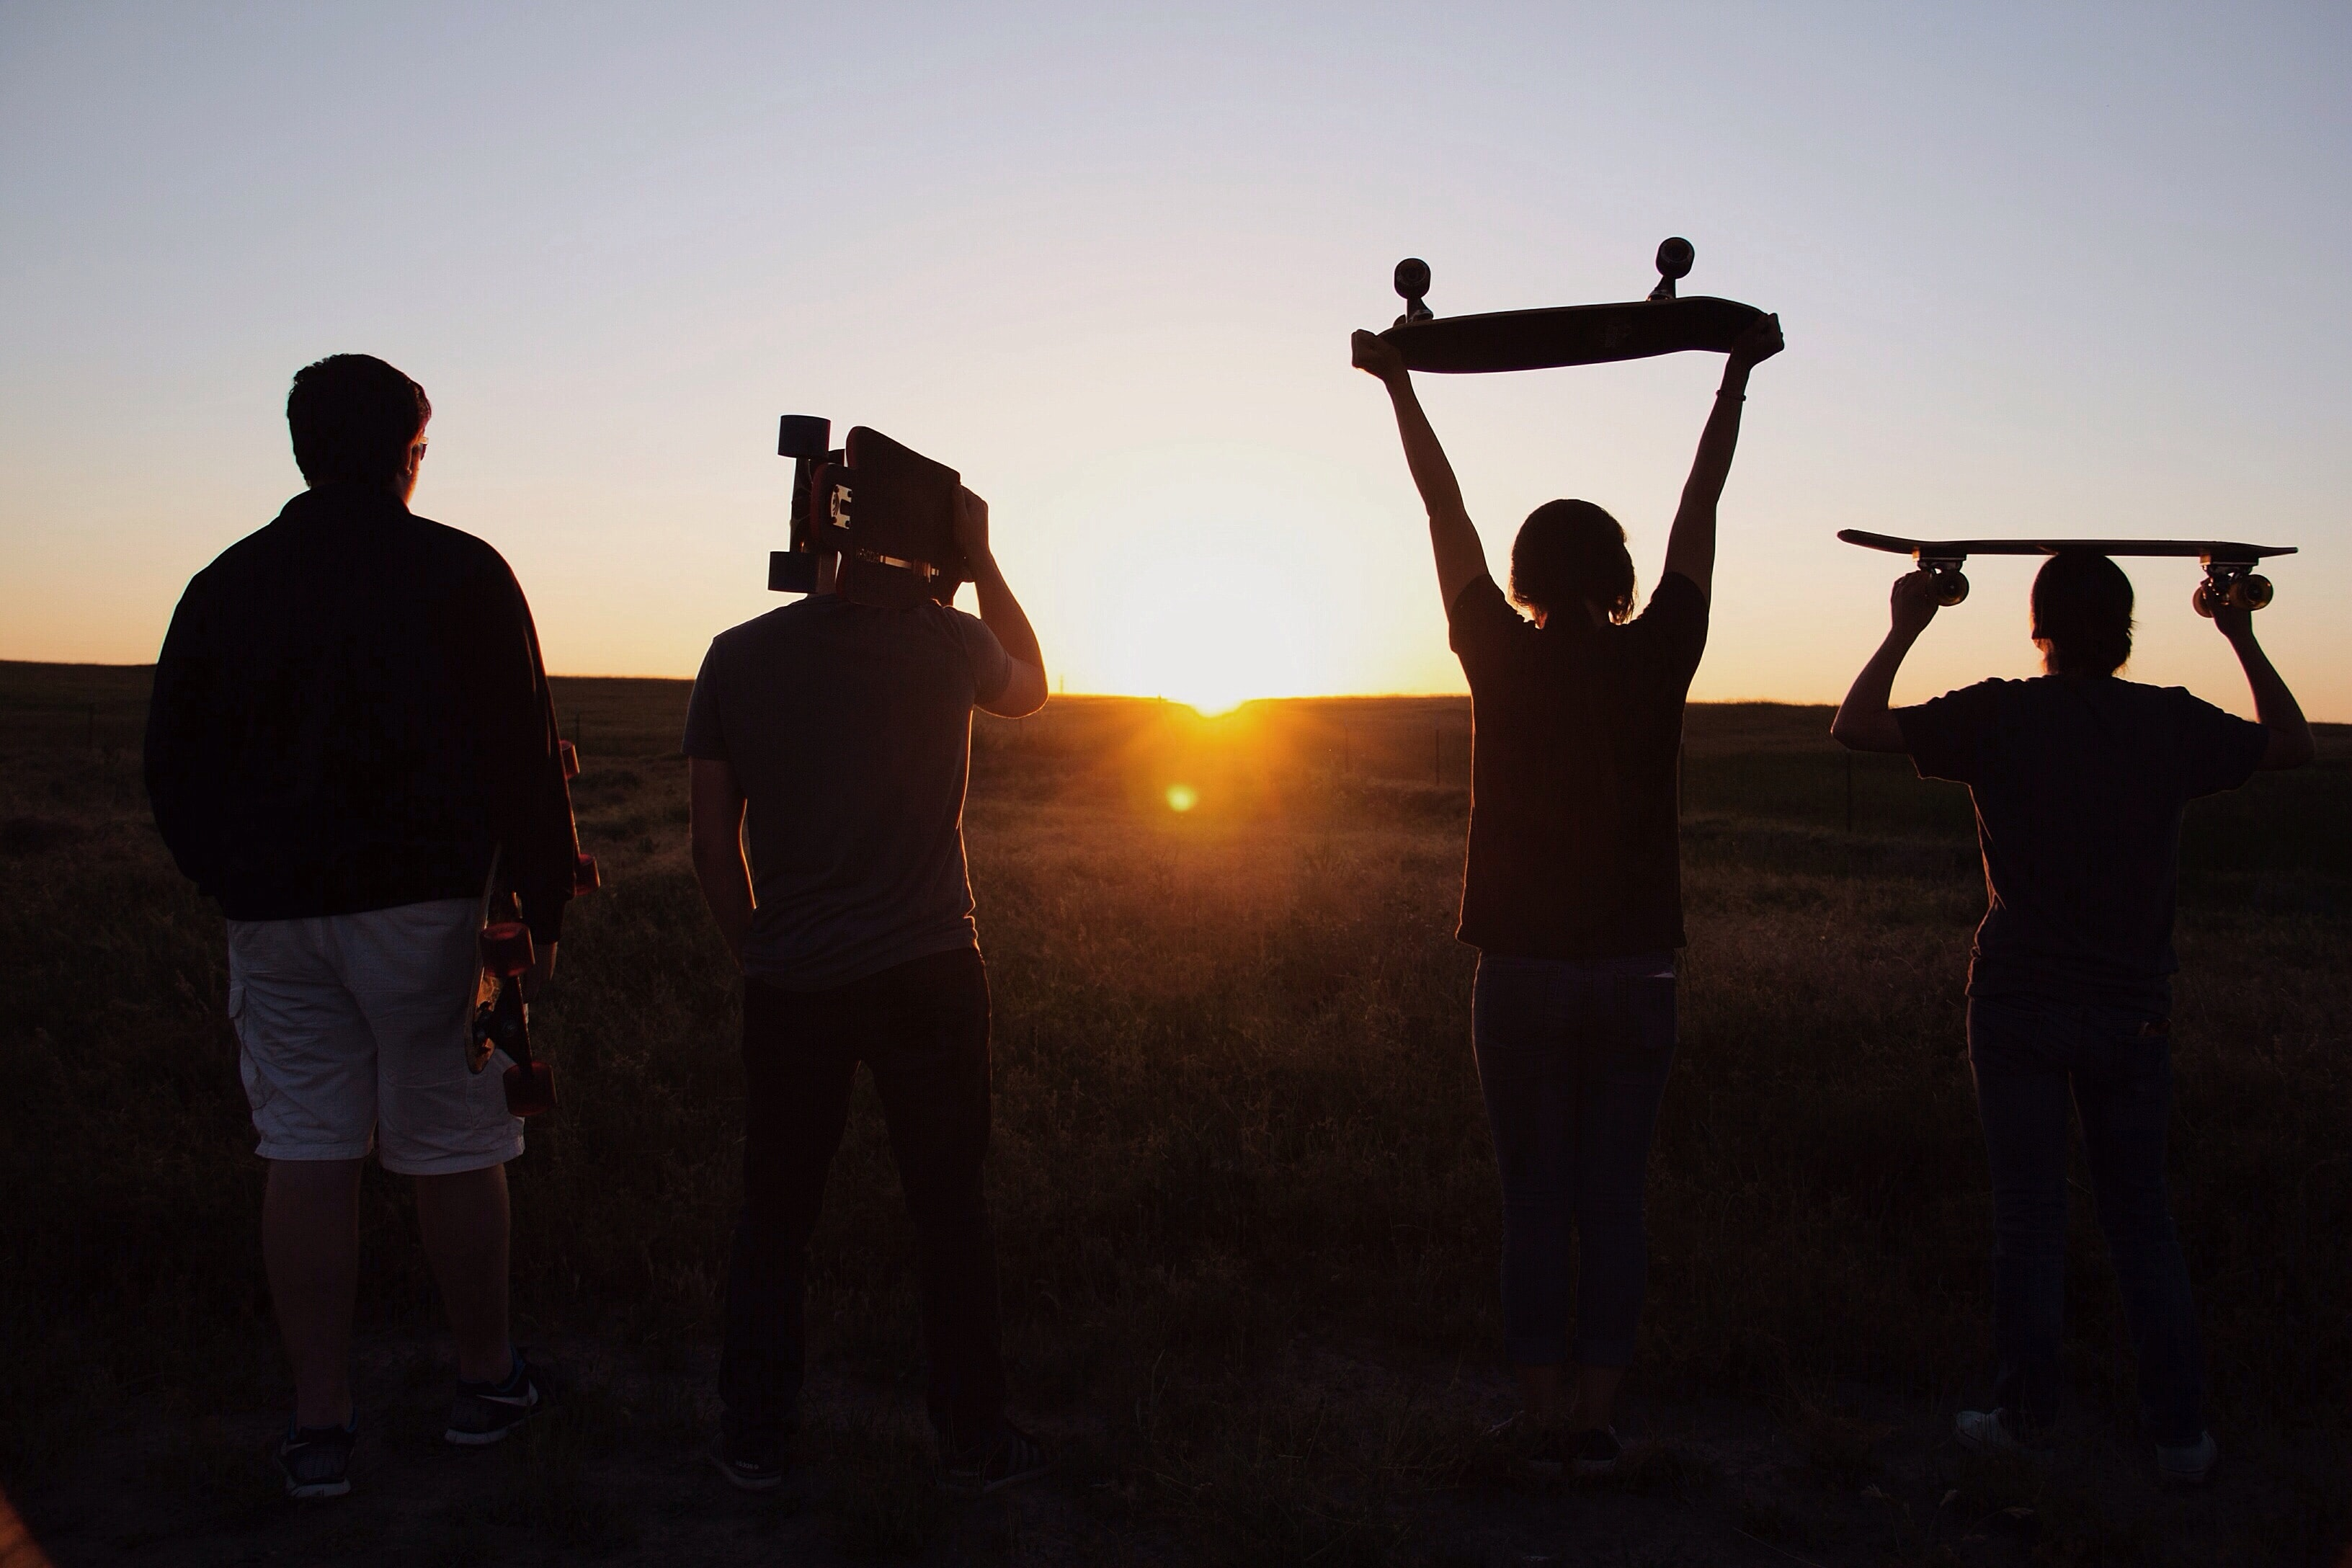 group of people holding skateboards under sunset